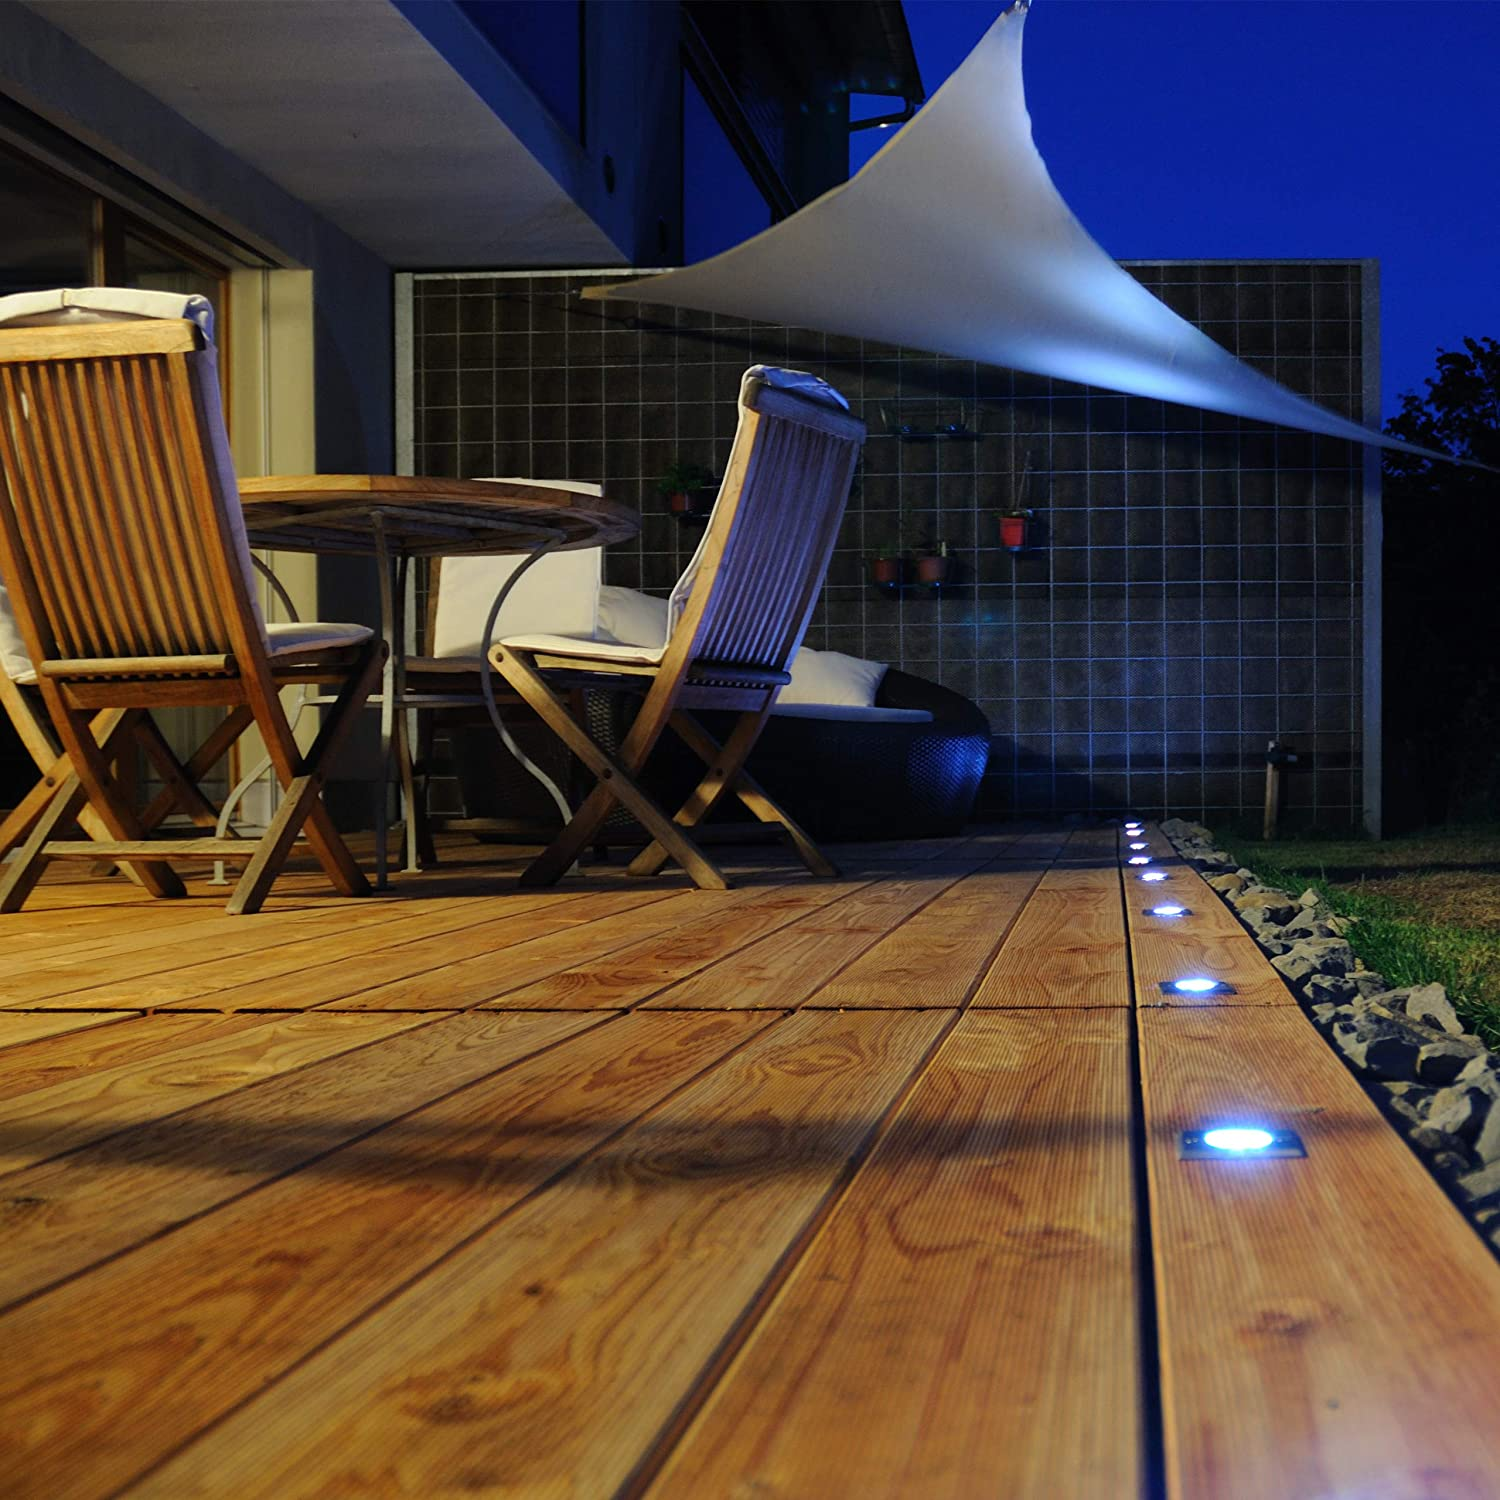 Water-Repellent White Shade Sail Triangle Balcony Canopy UV-Protection with Tethers 3x3x3m Relaxdays